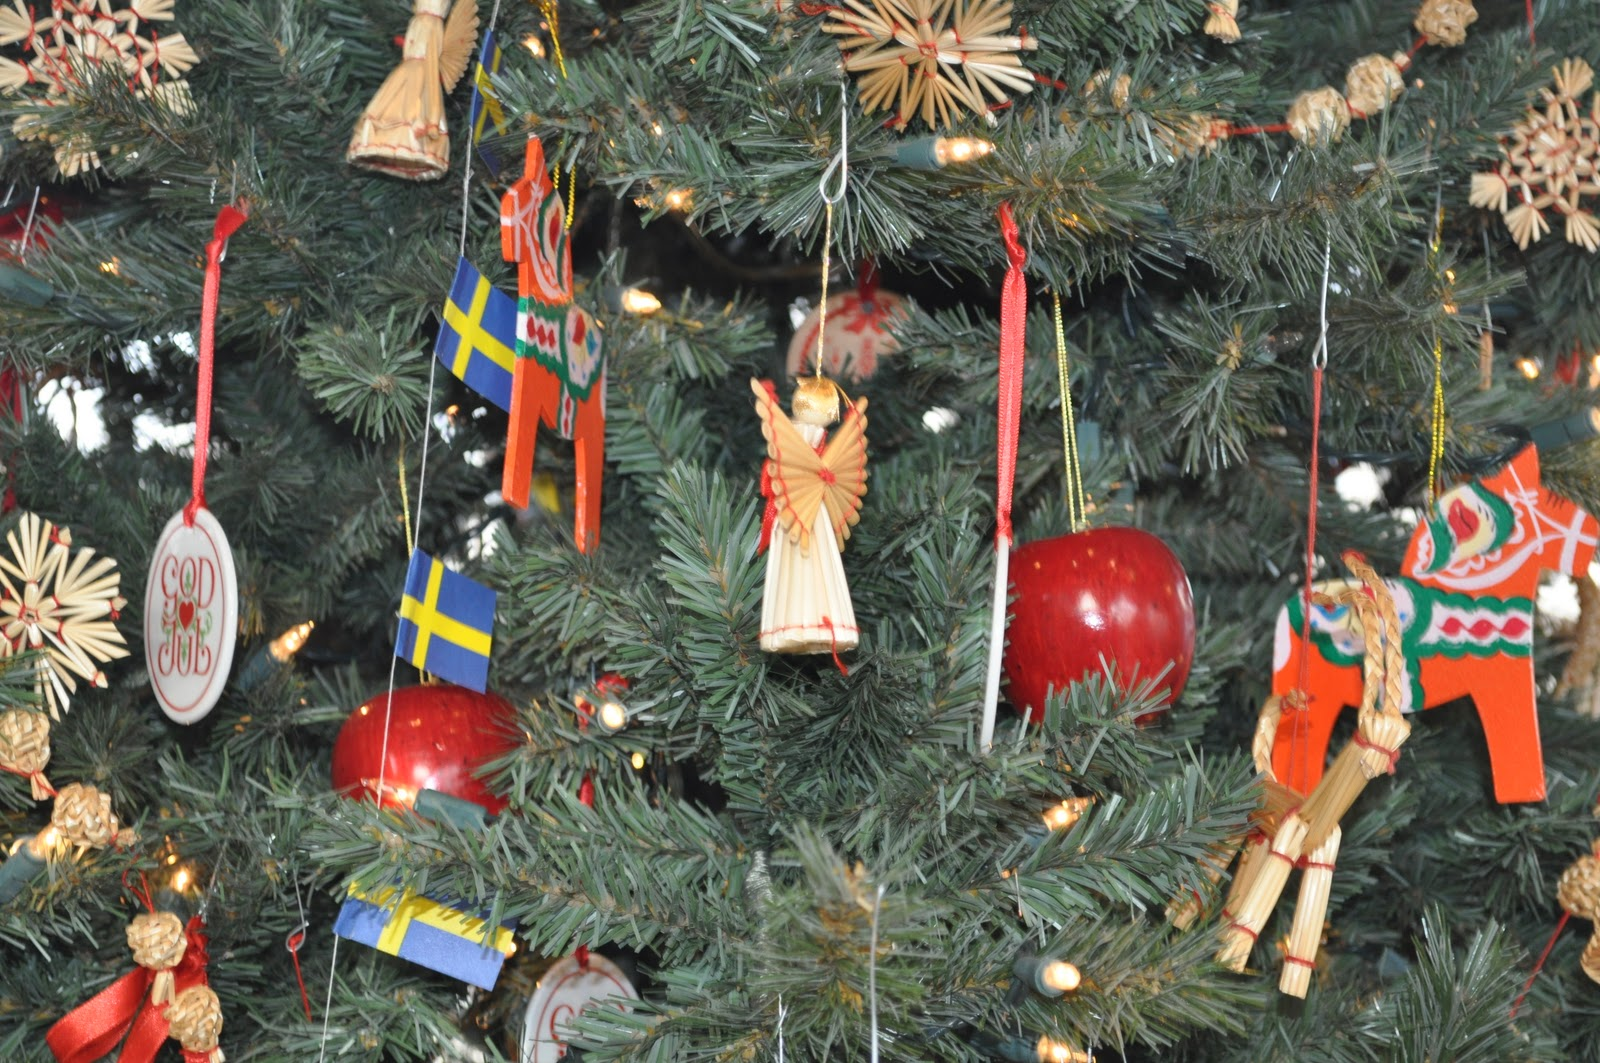 Michigan Cottage Cook: CHRISTMAS TREES FROM SOUTH KOREA